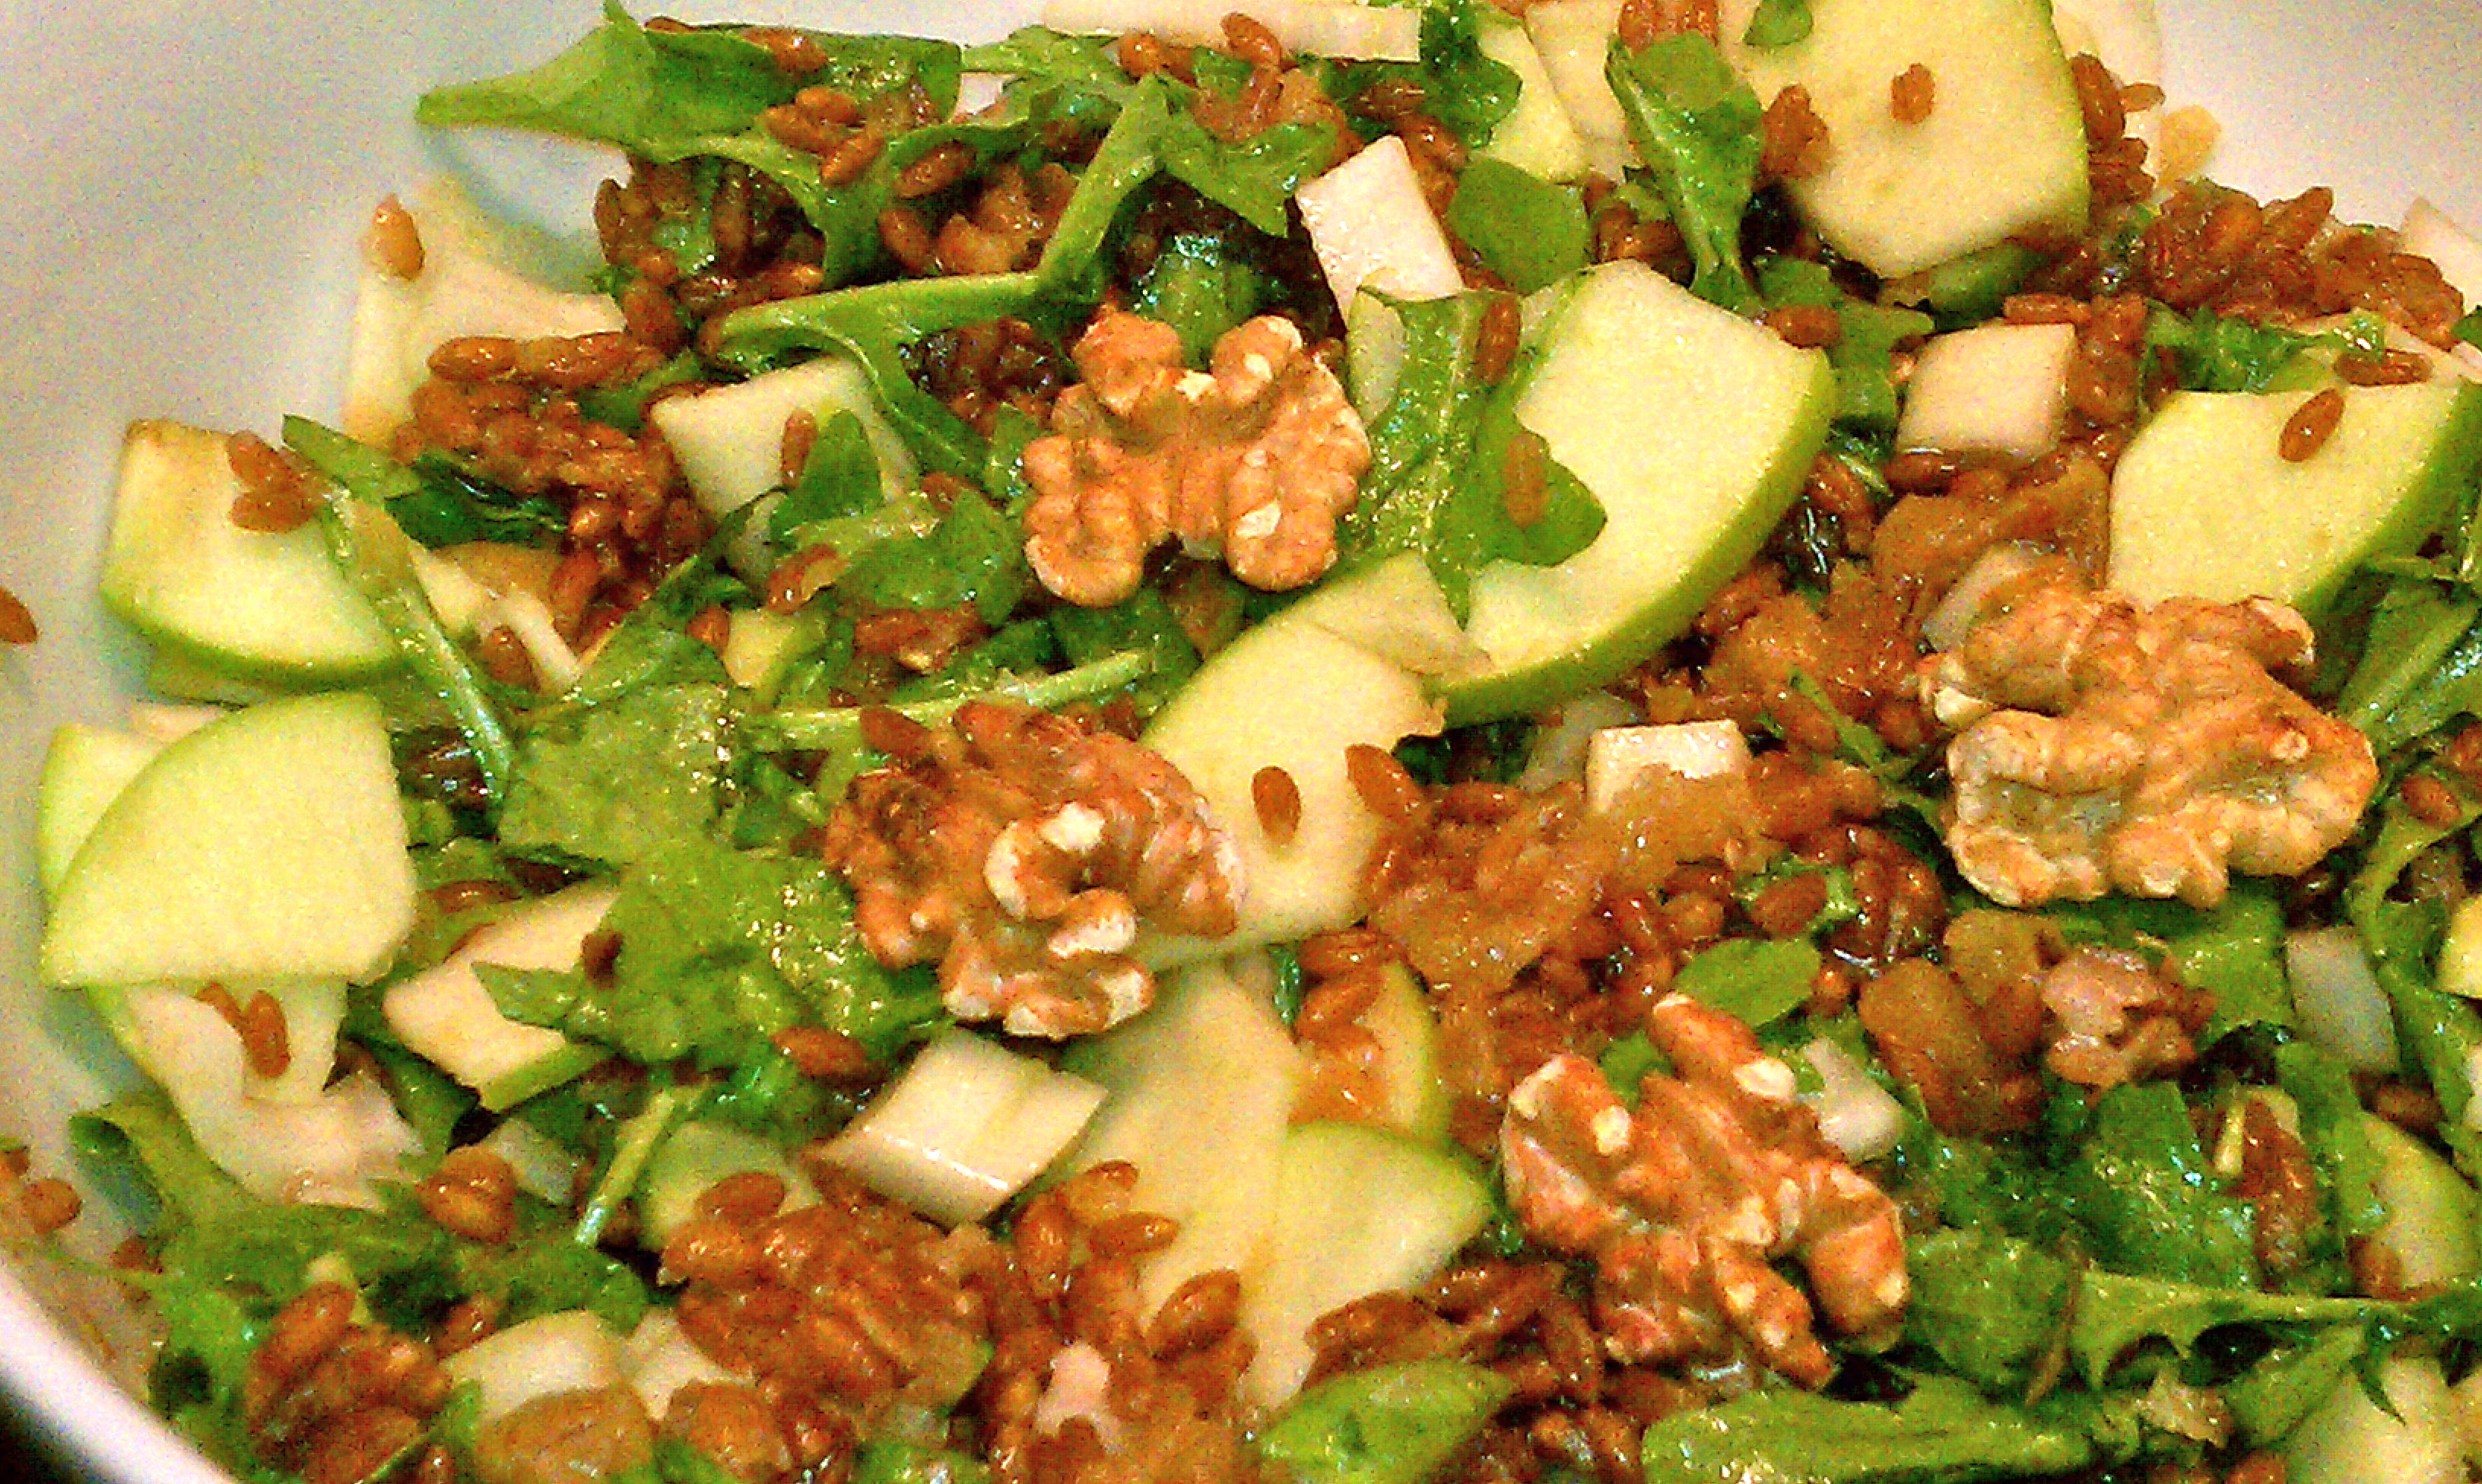 Wheatberry Salad with Apples